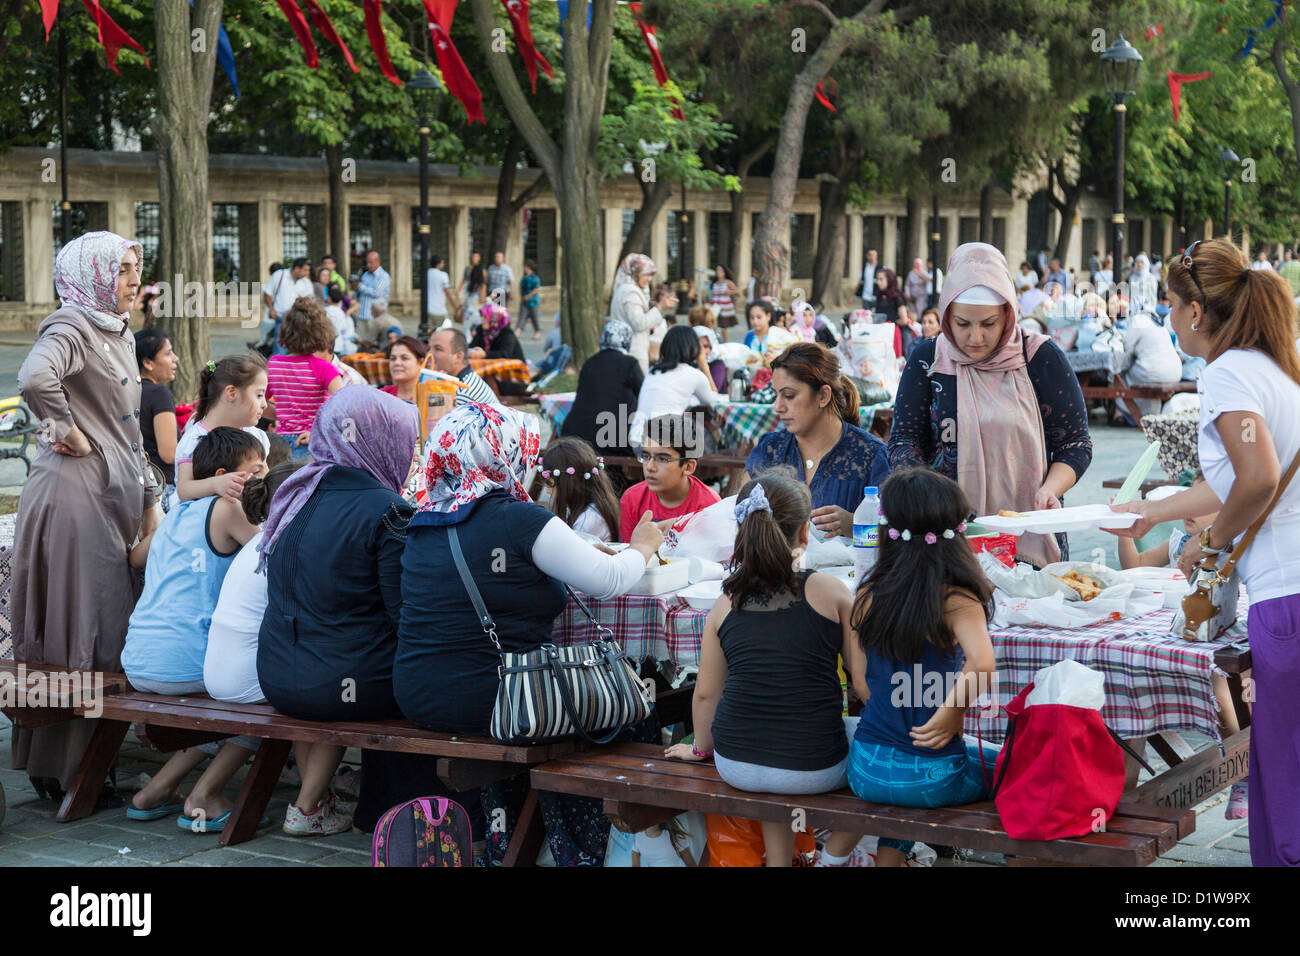 Muslim women awaiting sunset at Ramadan, Sultan Ahmet Square Istanbul, Turkey - Stock Image